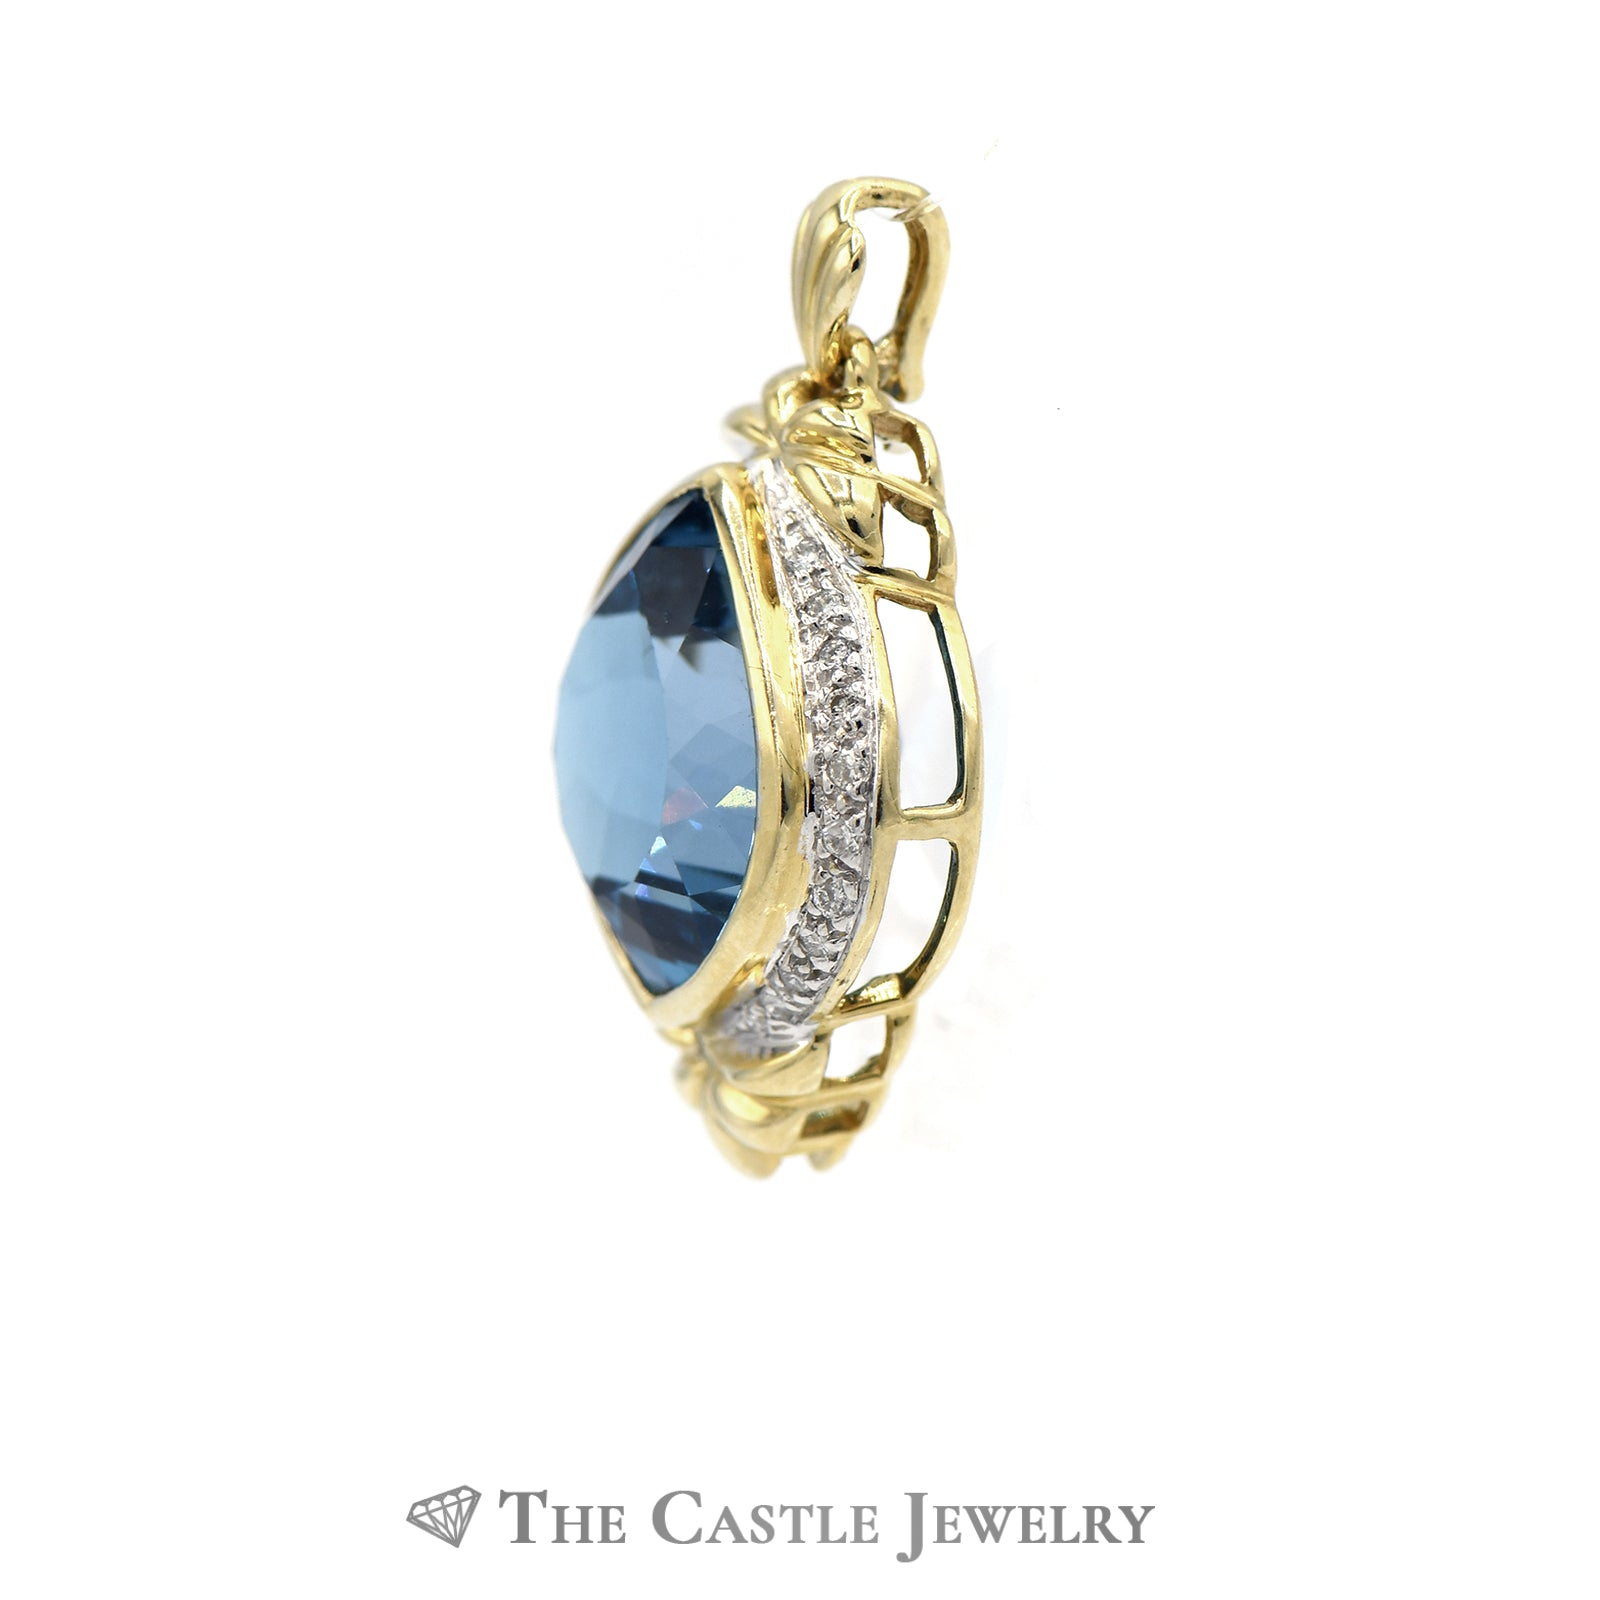 Fancy Cut Topaz and Diamond Pendant in 14KT Yellow Gold-2